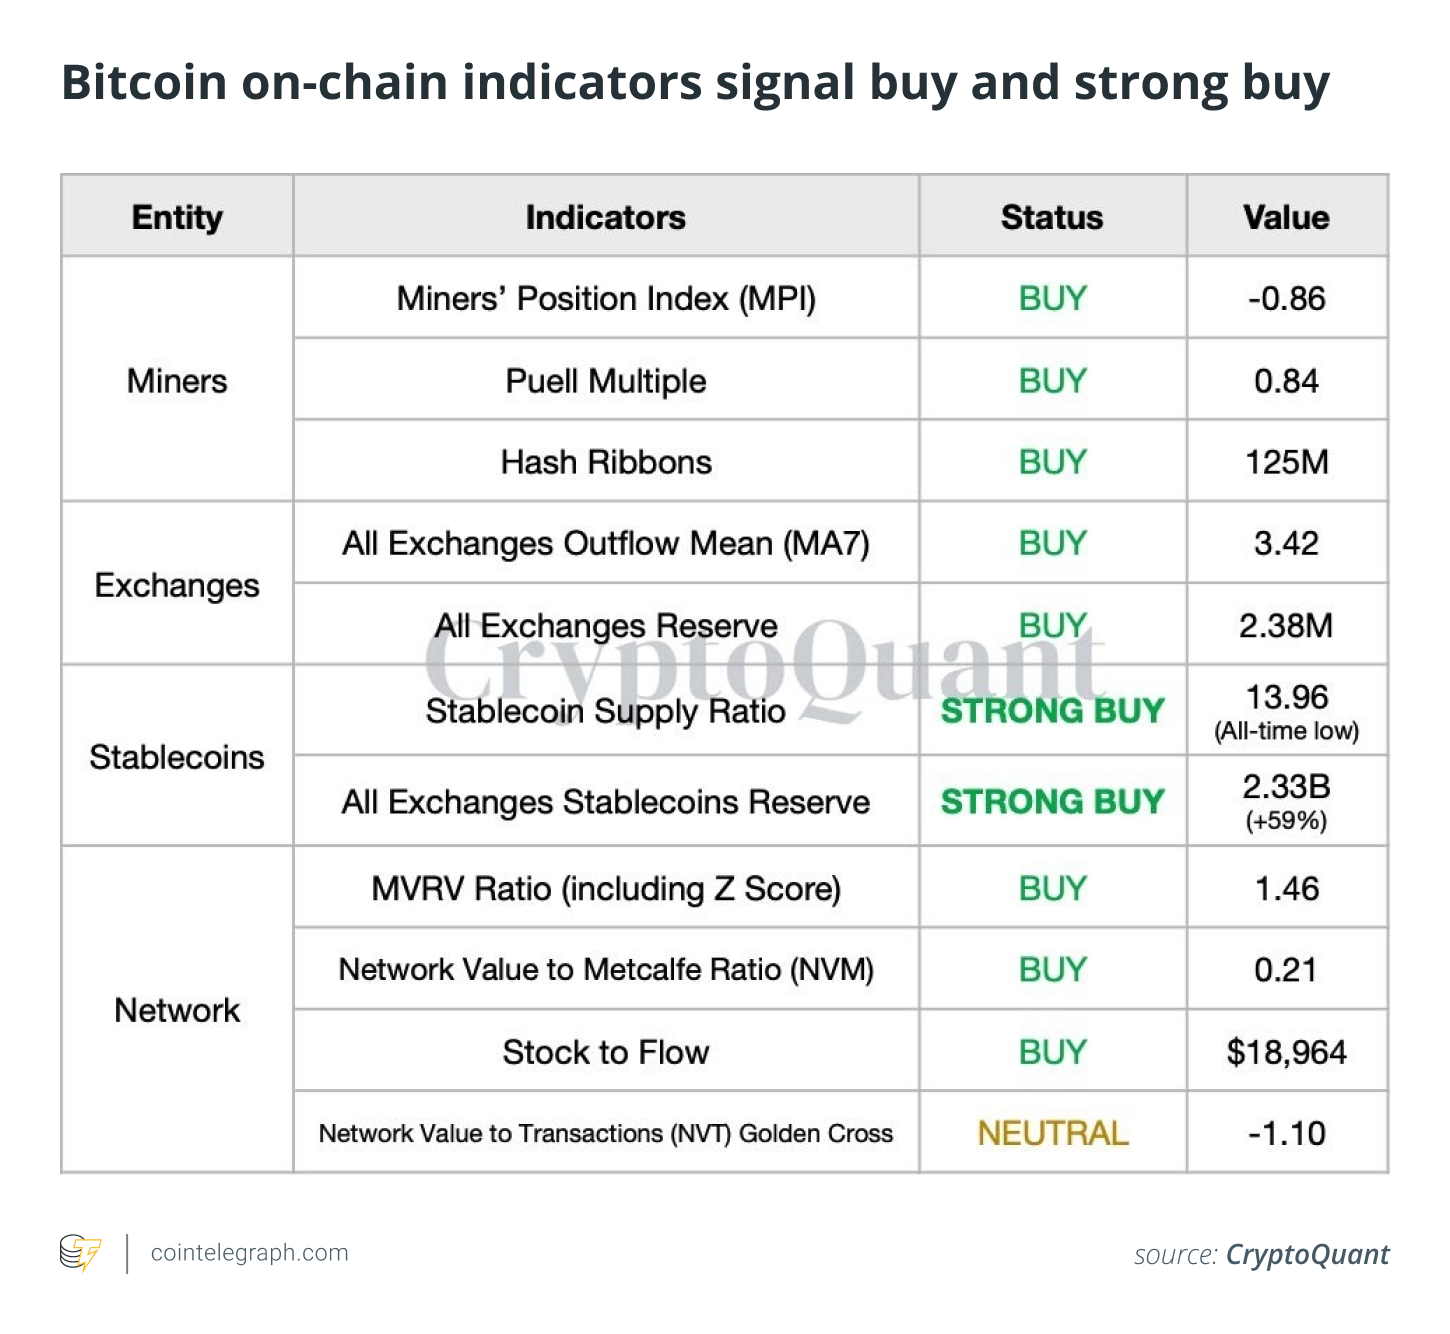 Bitcoin on-chain indicators signal buy and strong buy